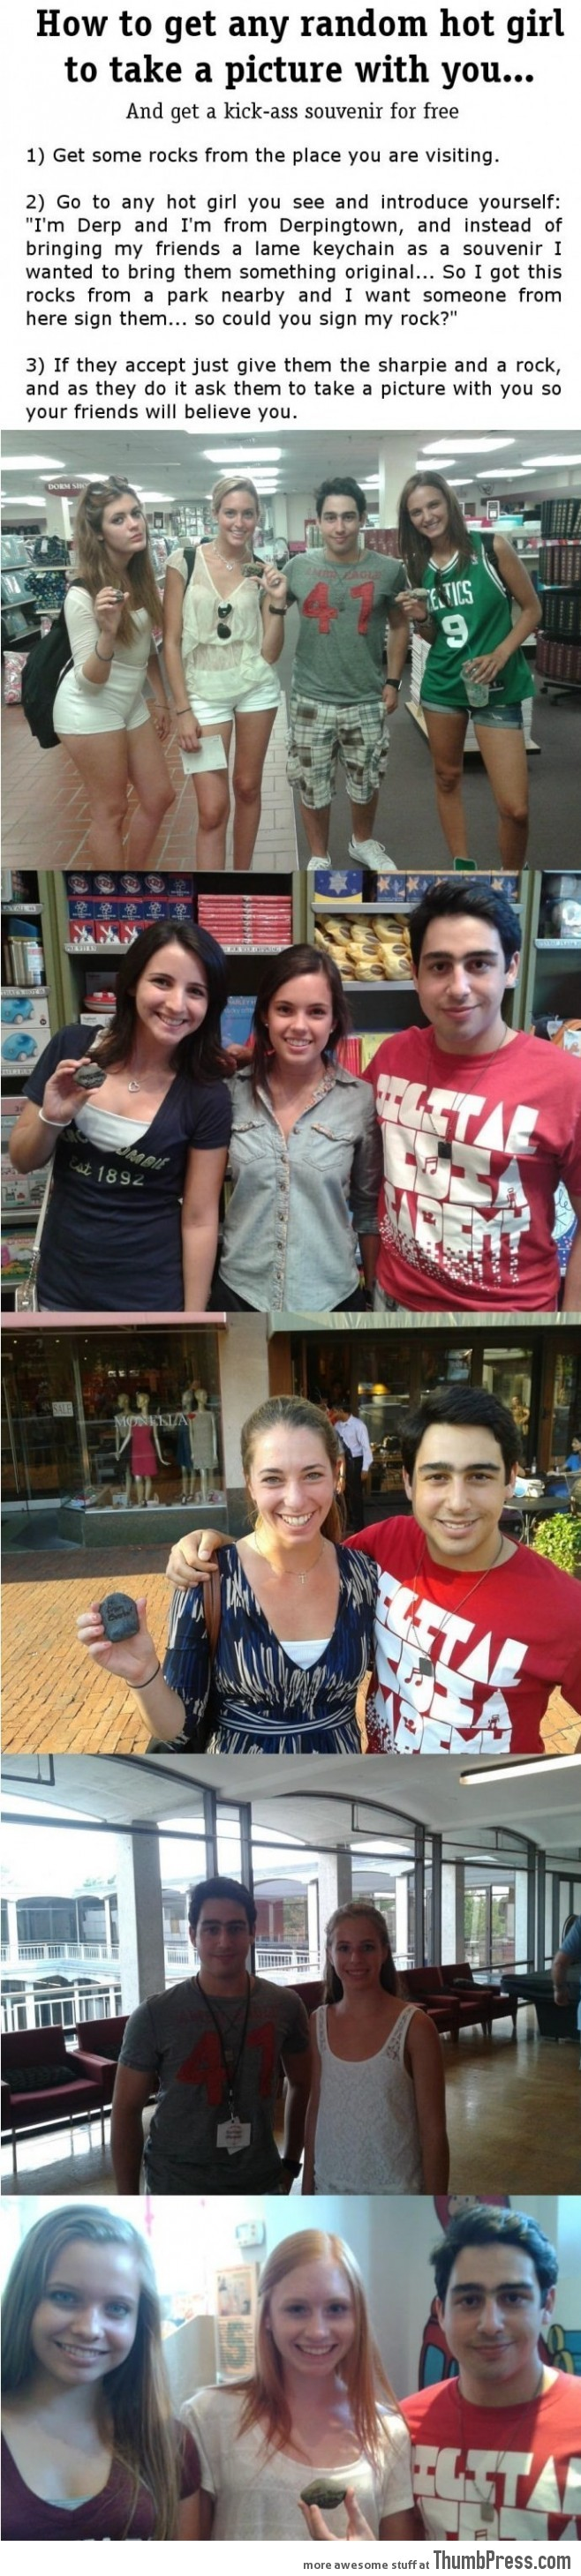 How to Get Any Hot Girl to Take a Picture With You!